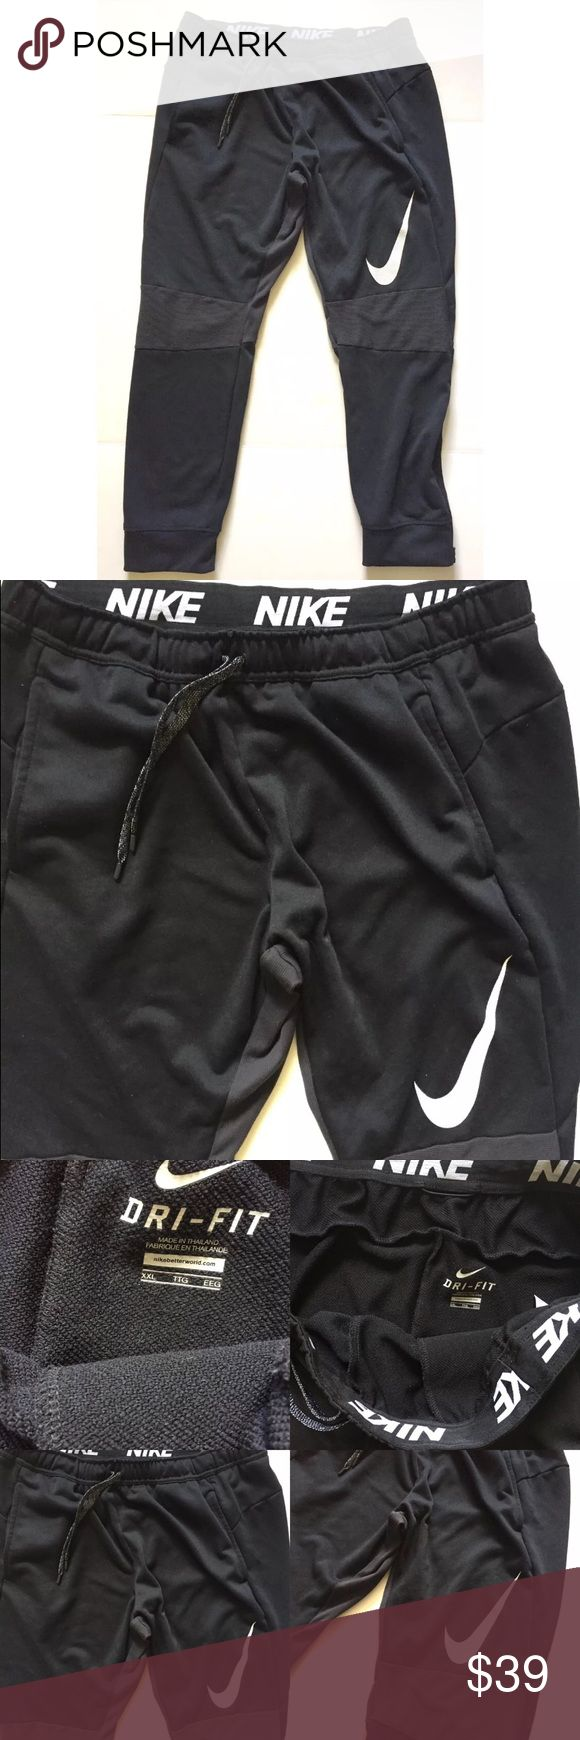 NIKE Black Dri Fit Ko Slacker Jogger Pants These Nike men's athletic pants are size XXL. These pants are black with a large white Nike swoosh. They are a jogger style where they are bigger in the thigh area and tighter and the calves. 